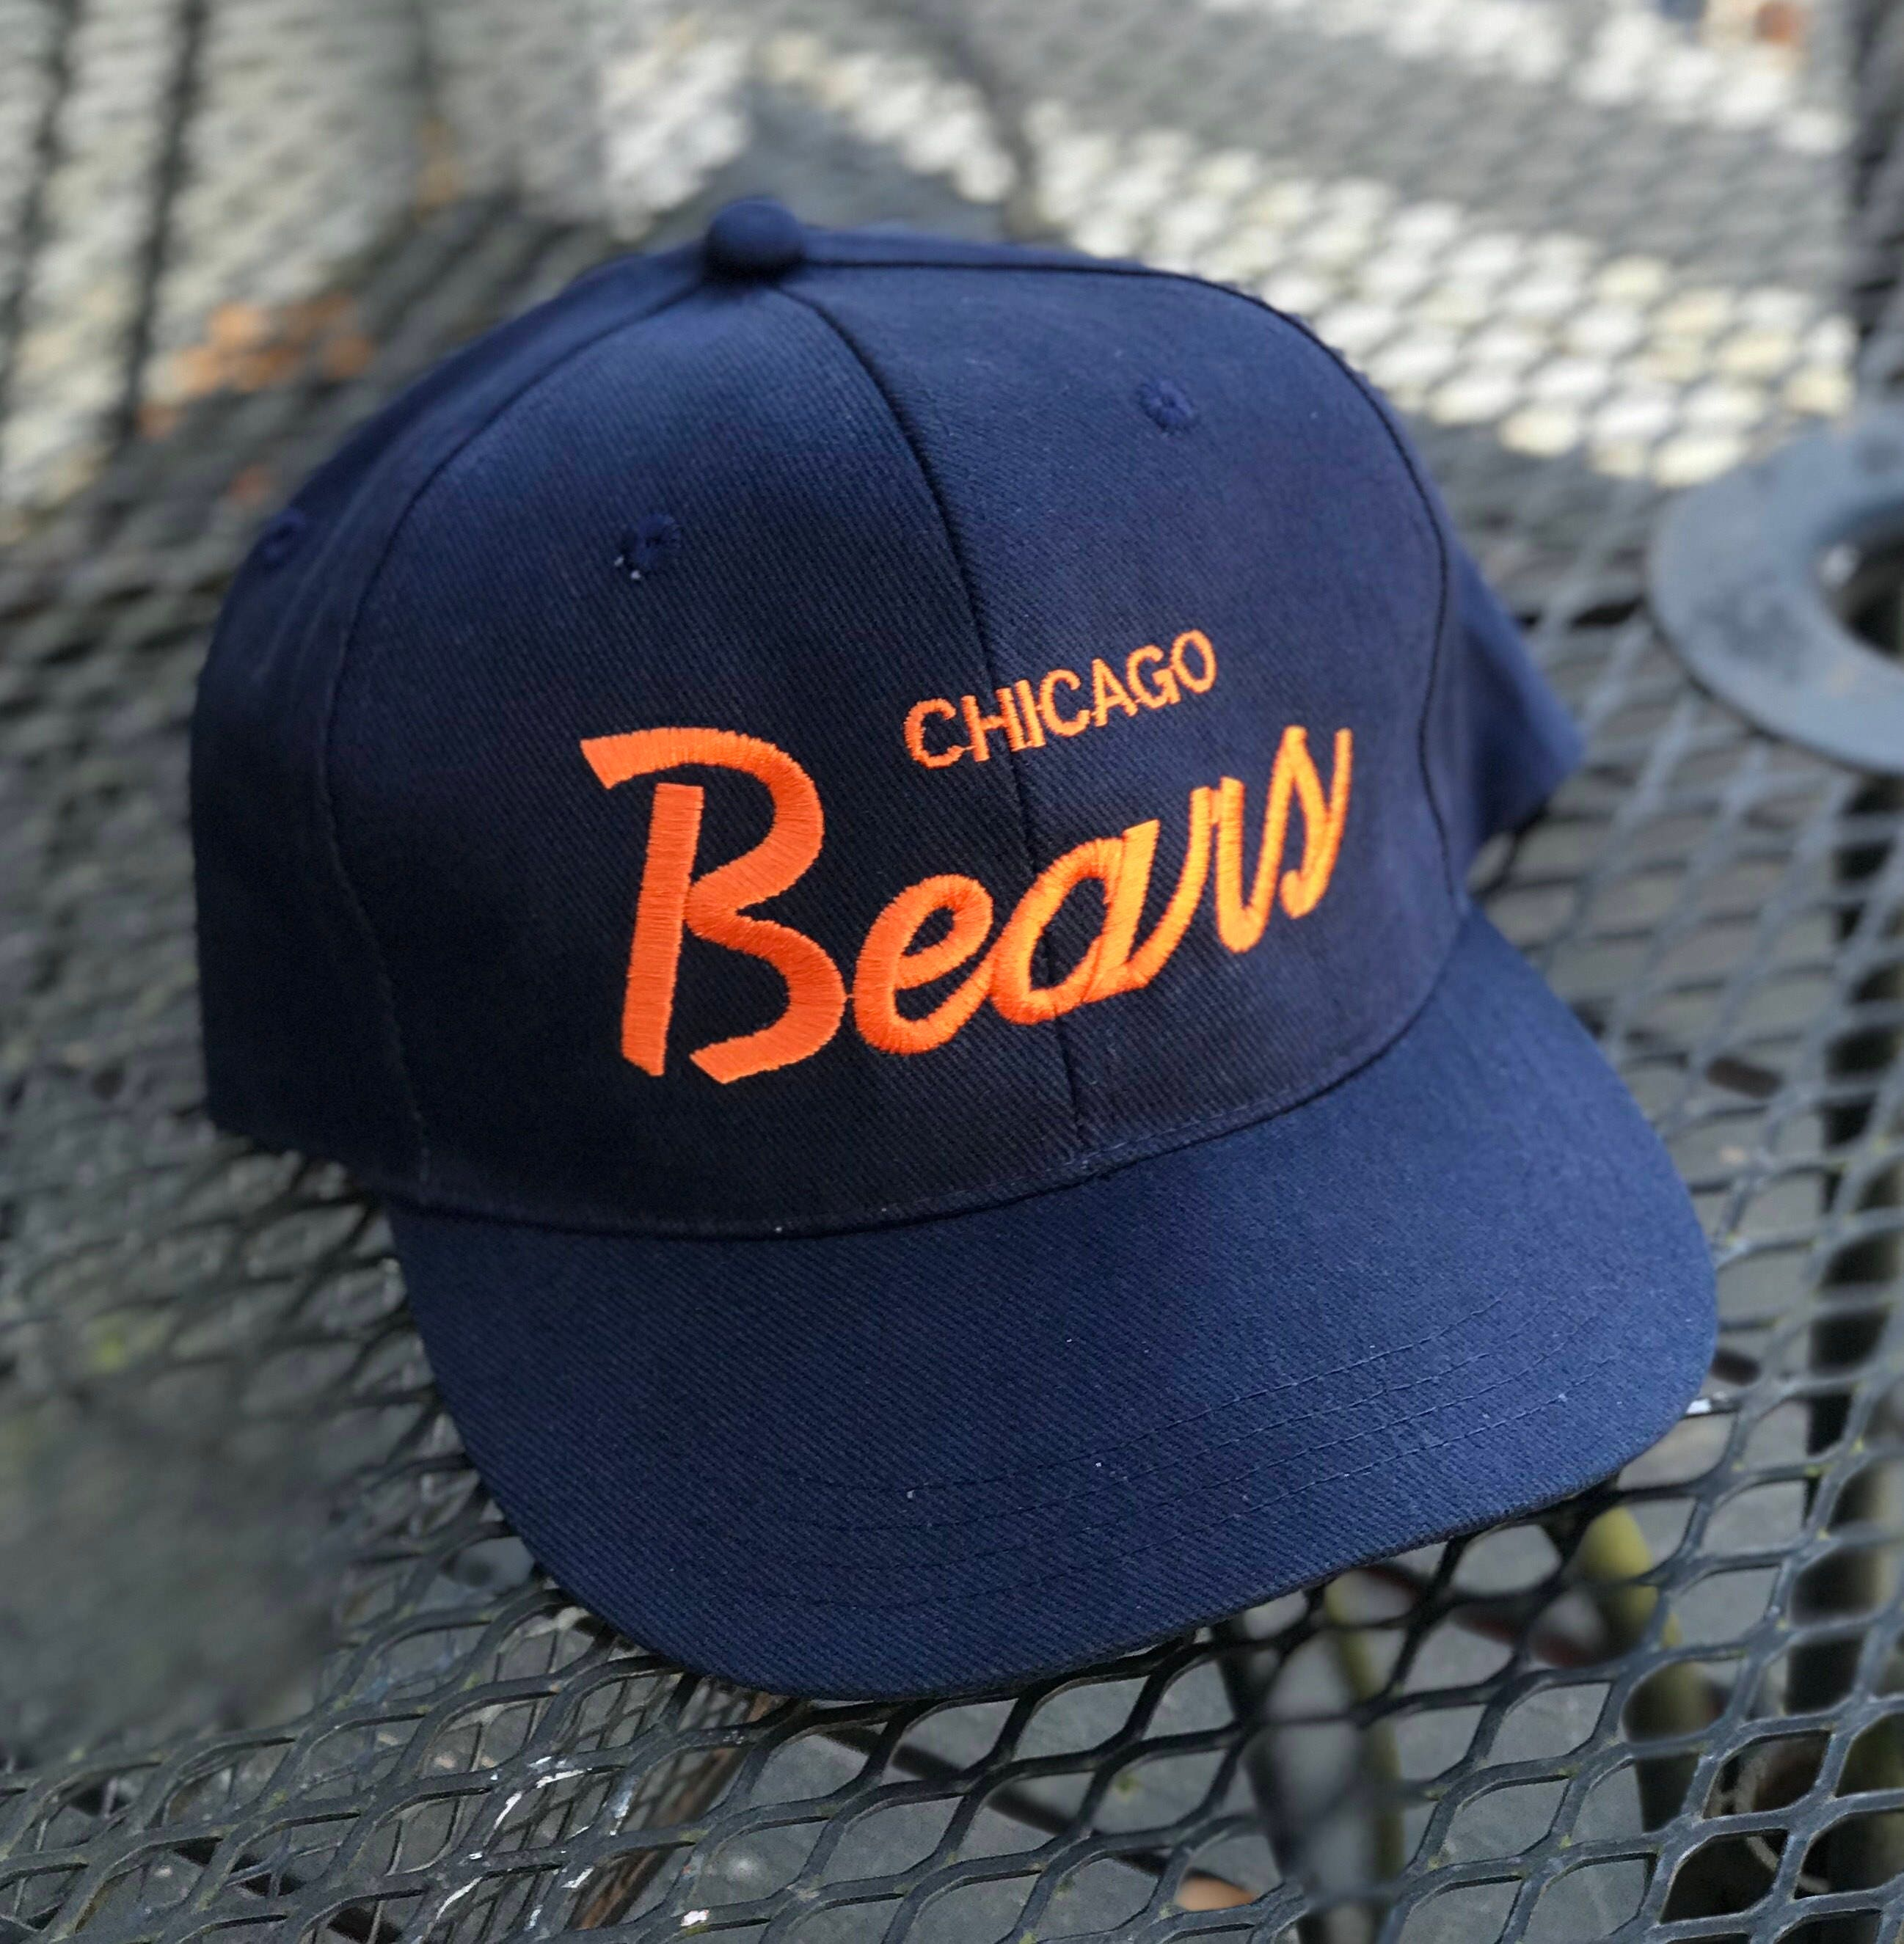 5a8977f0 Vintage Chicago Bears SnapBack Hat Cap 90s Christmas Vacation Clark Griswold